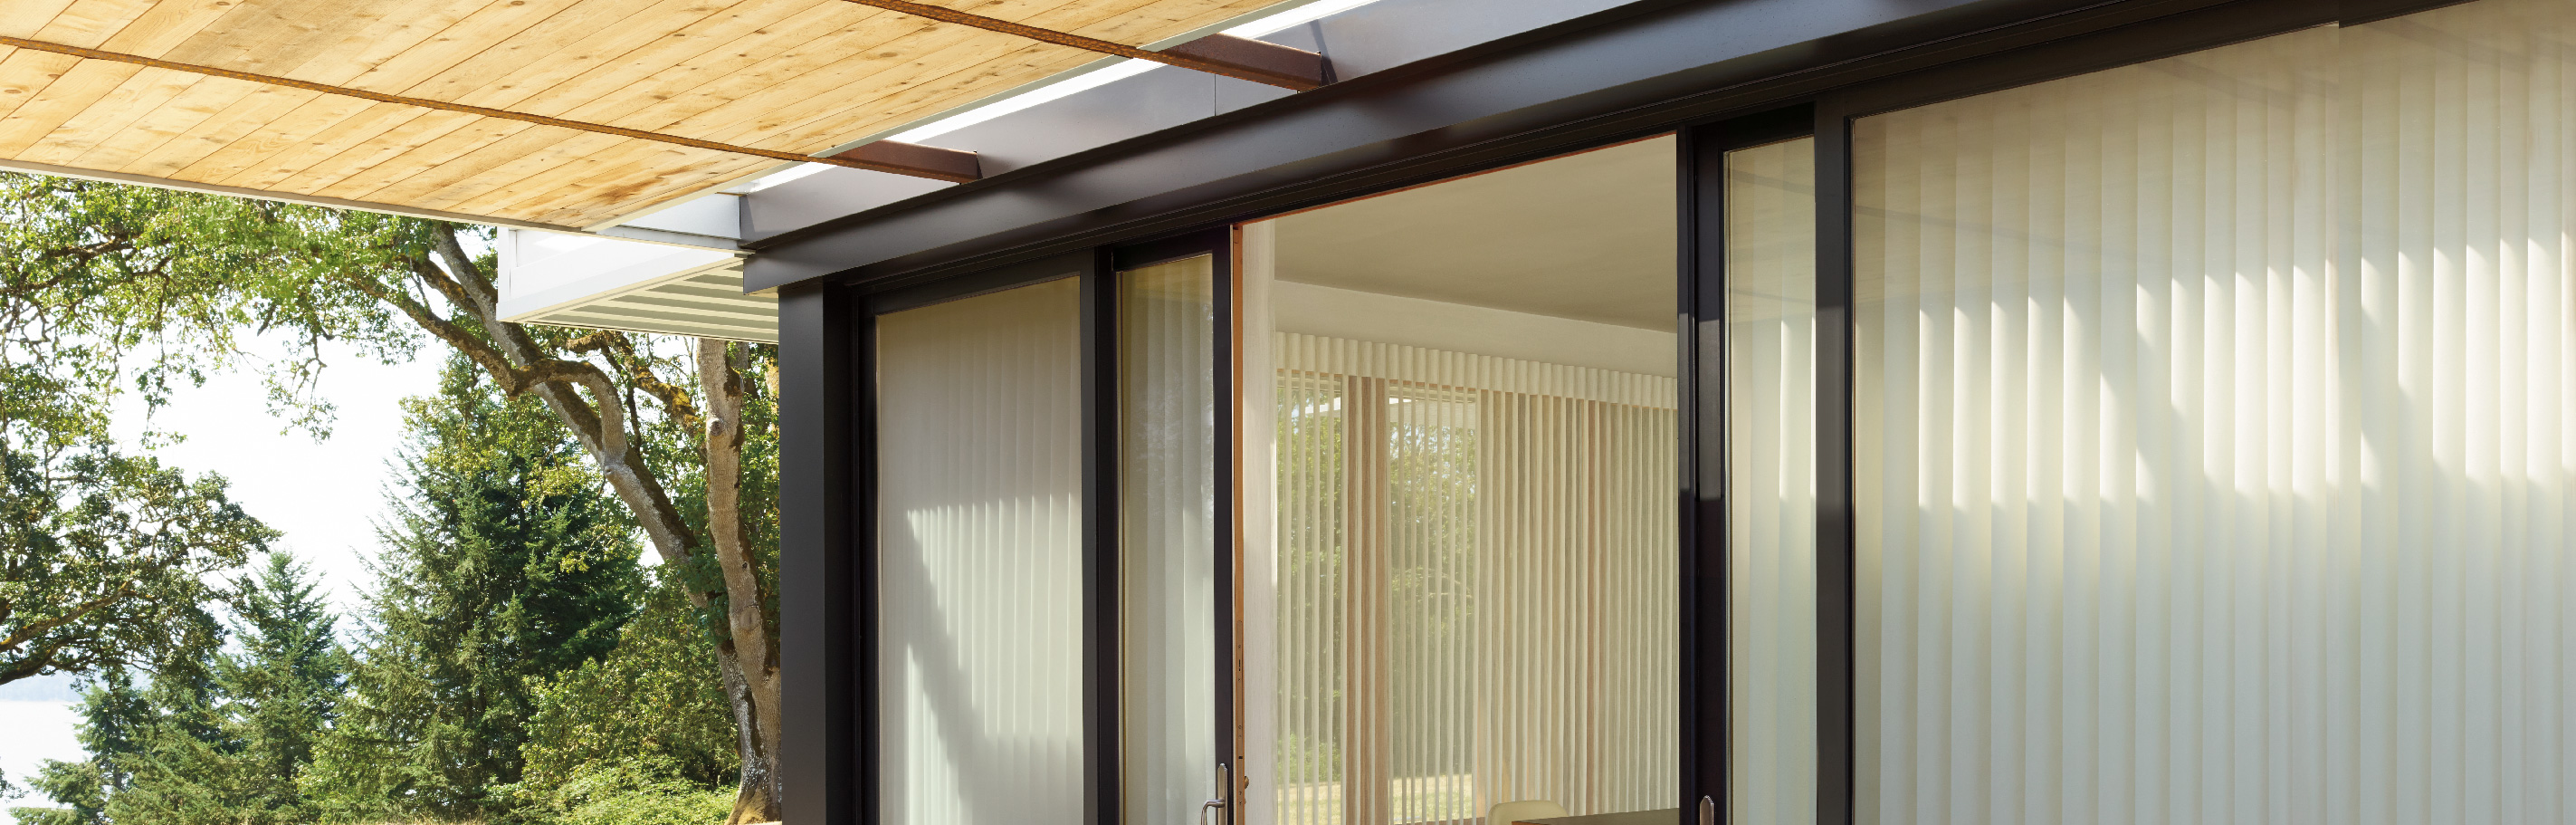 Luxaflex - Products - Softshades and Fabrics - Luminette Privacy Sheers Bottom